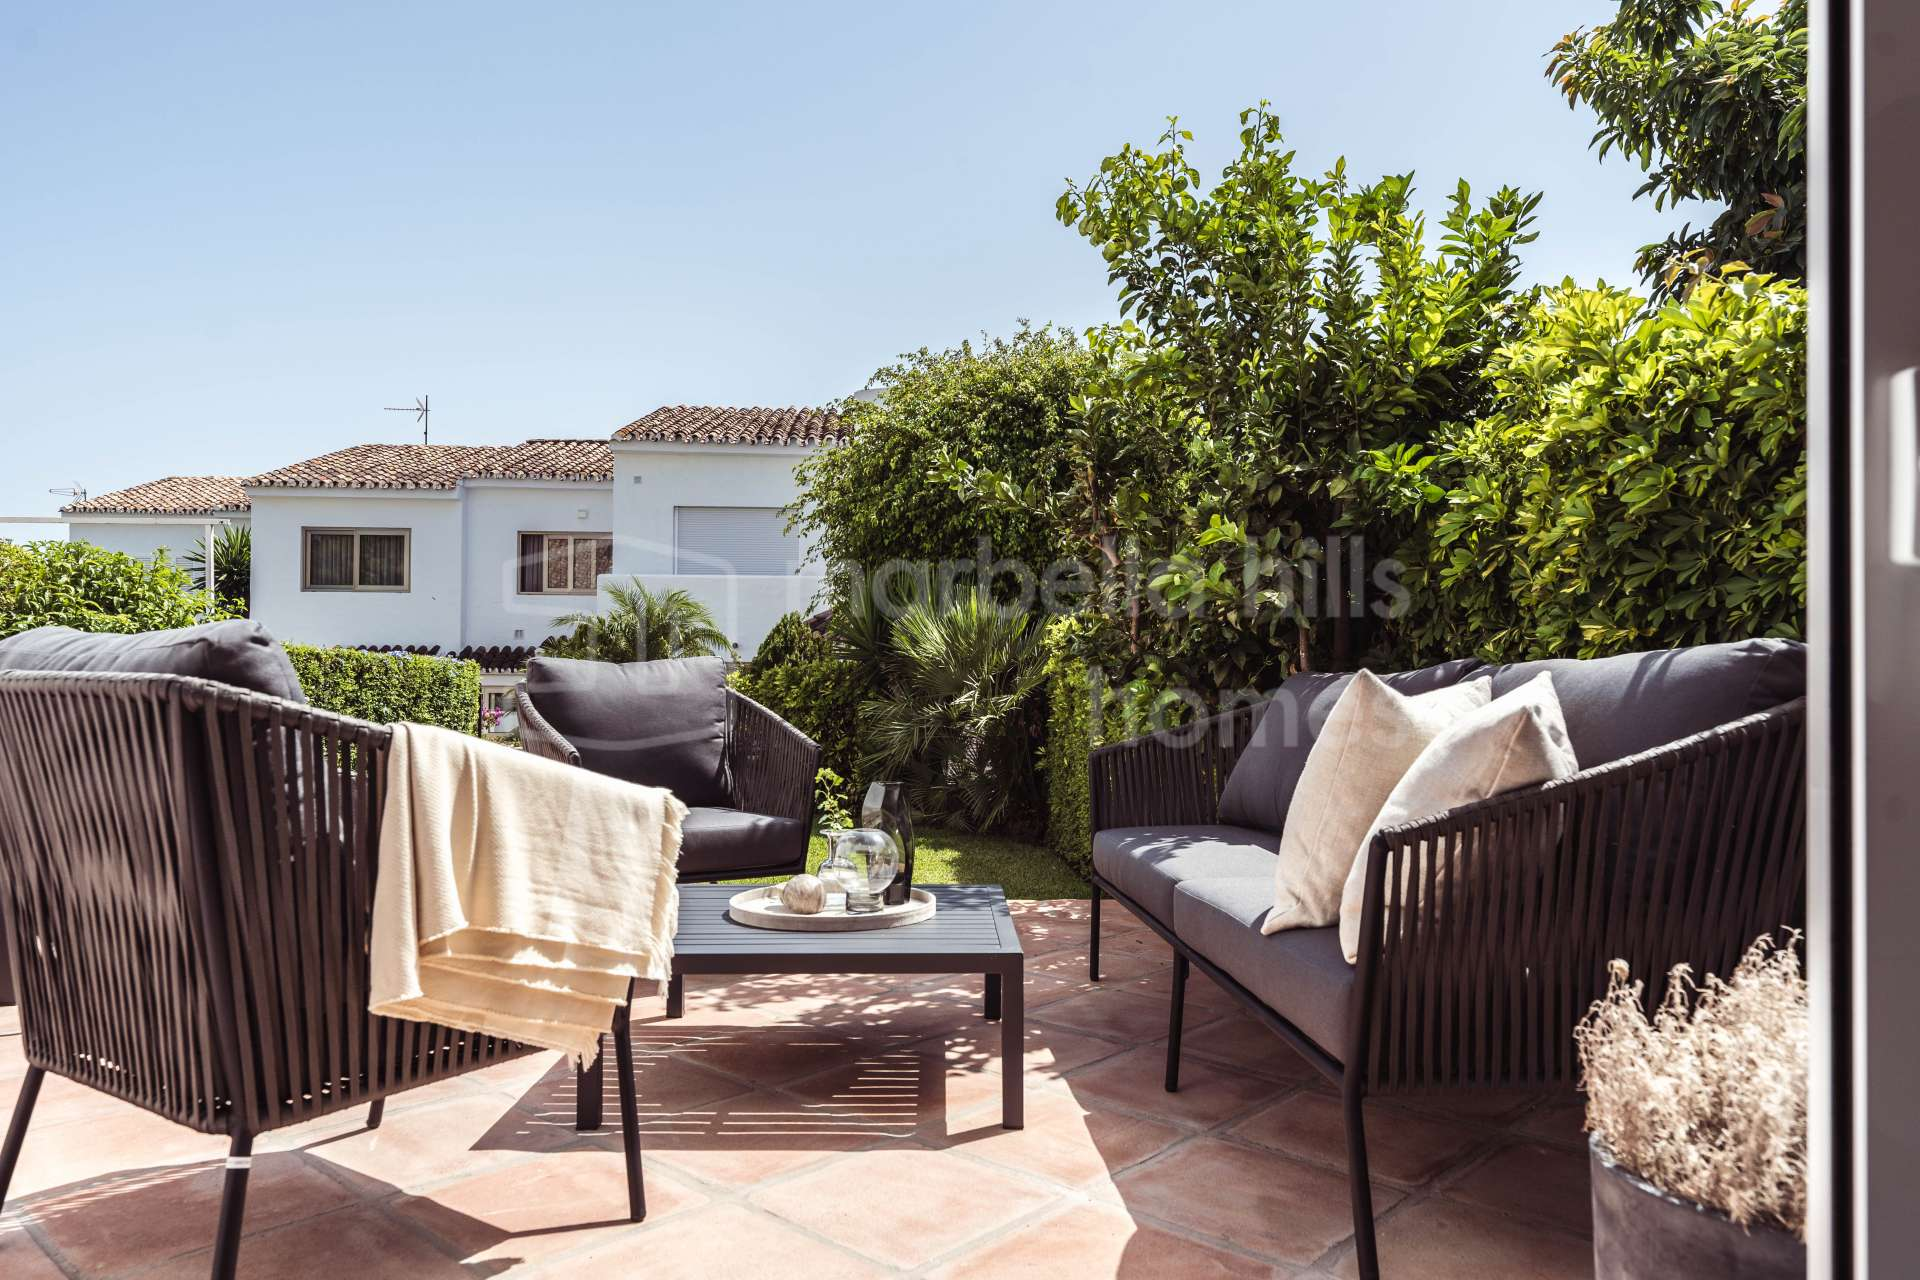 Completely Renovated 3 Bedroom Town House In Parcelas Del Golf Nueva Andalucia